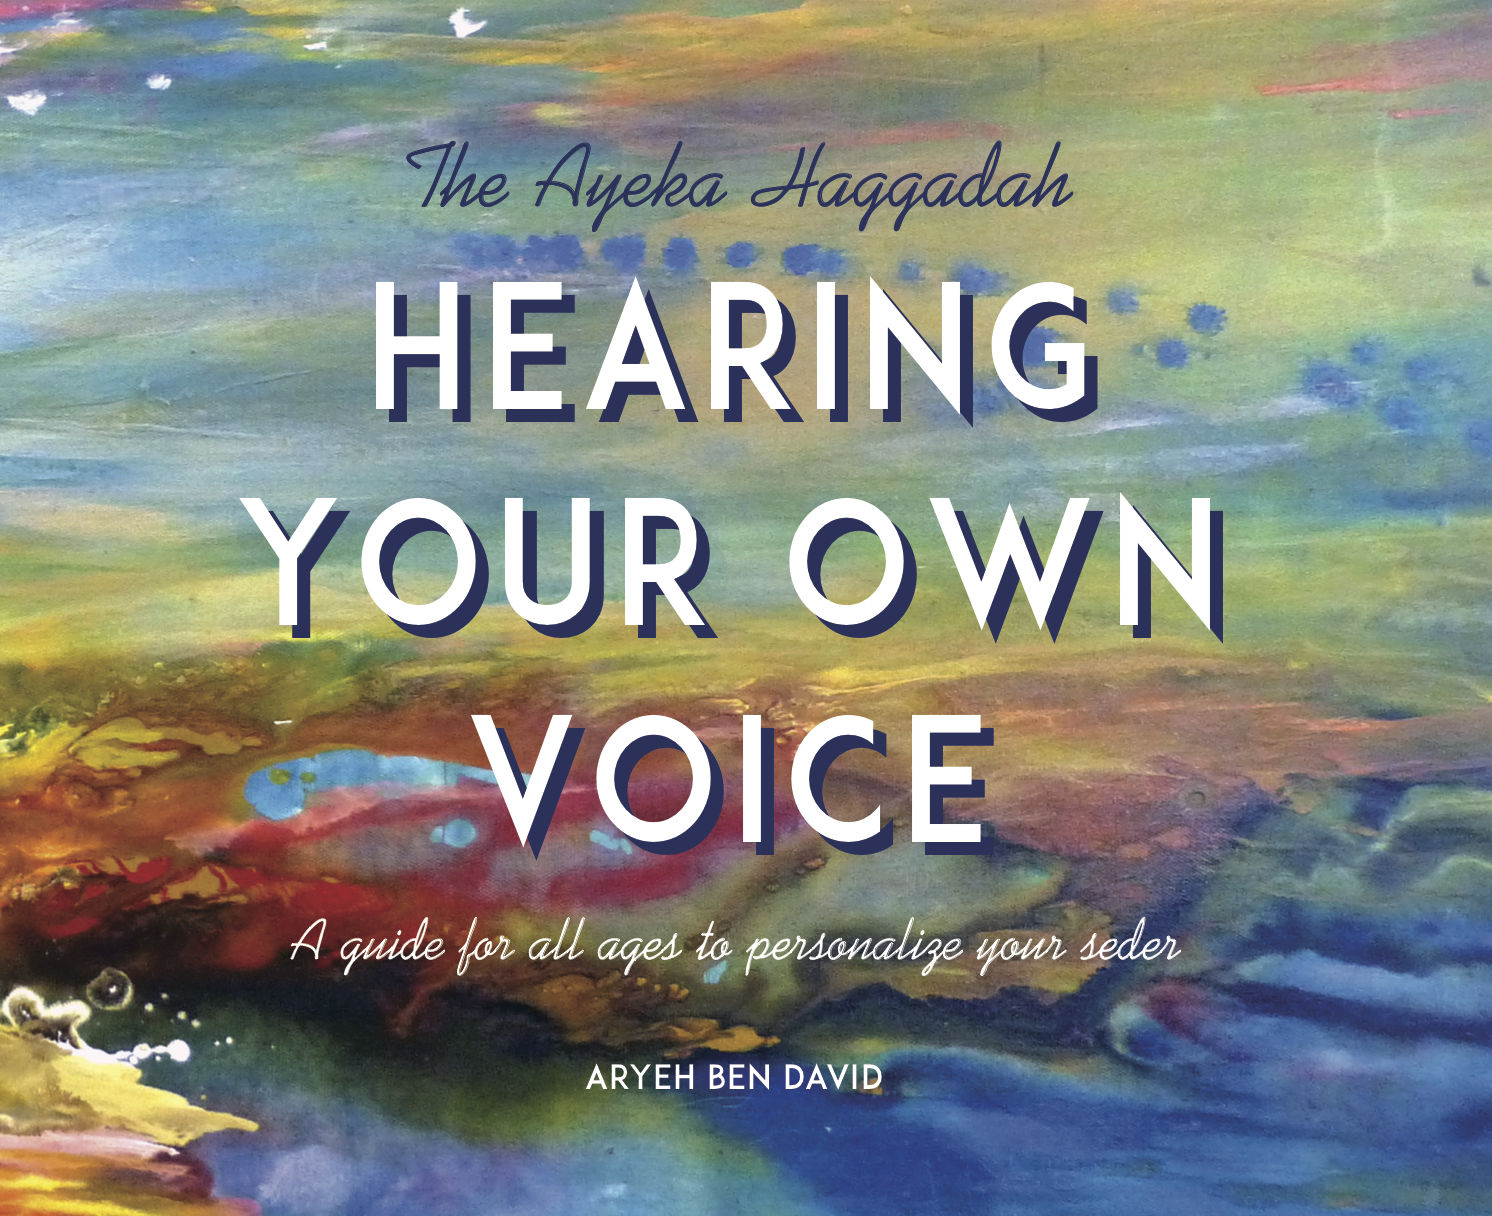 Hearing Your Own Voice: The Ayeka Haggadah